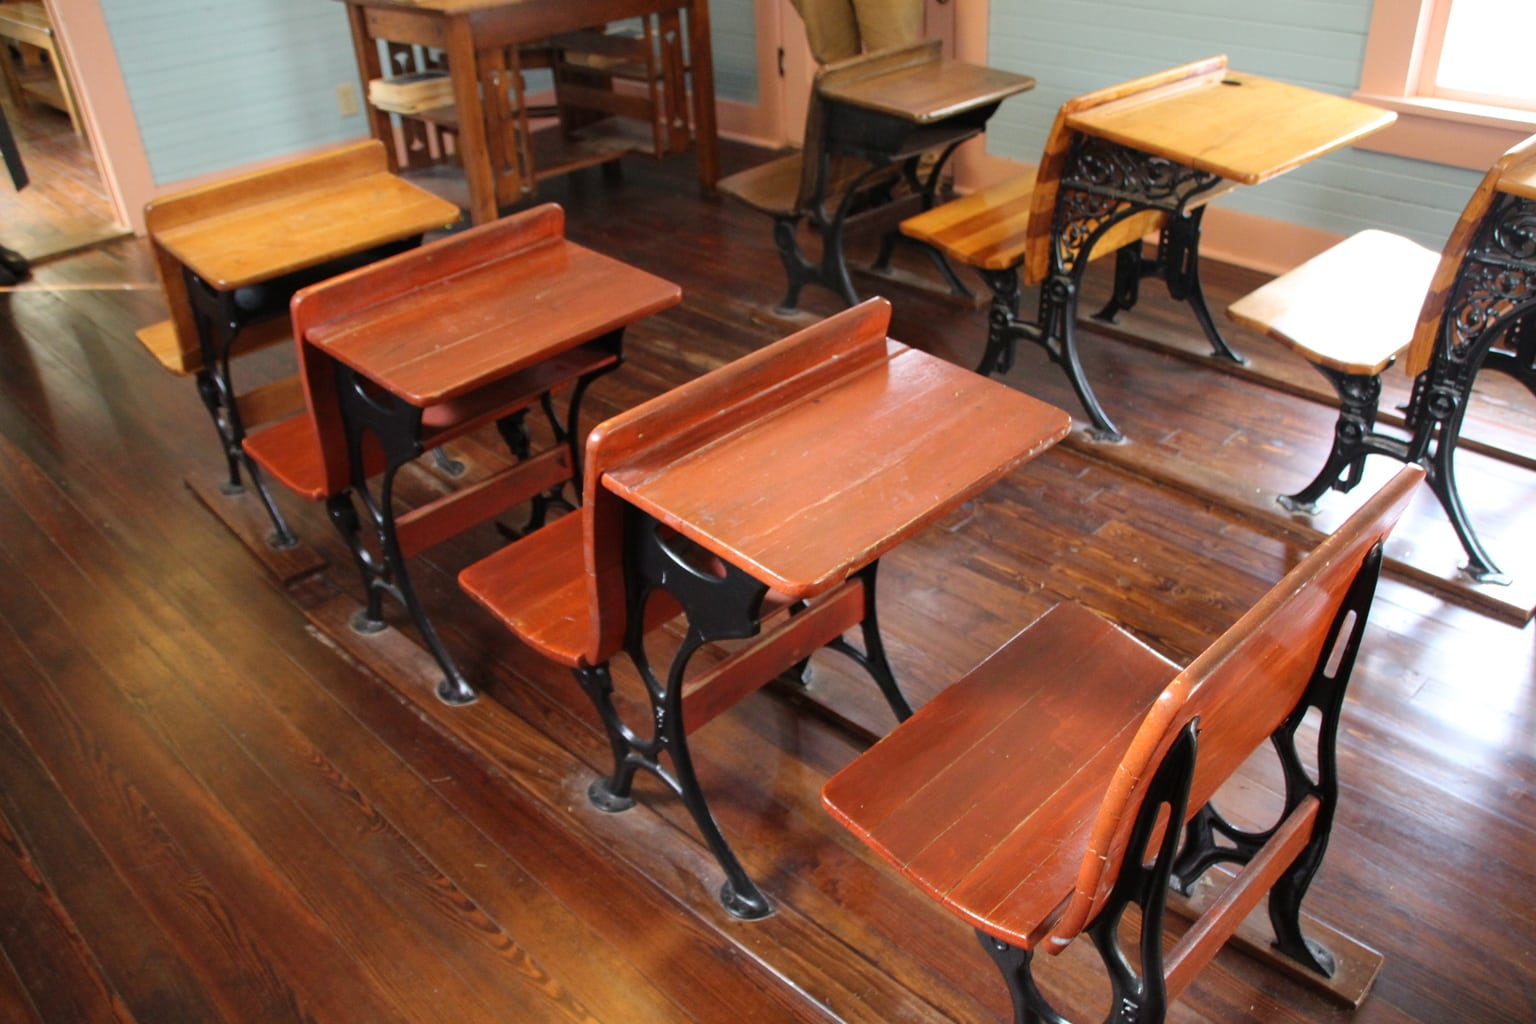 Speaking of homesteaders, your kids will enjoy seeing what a schoolhouse looked like in the early 1900s at The Donald Schoolhouse.